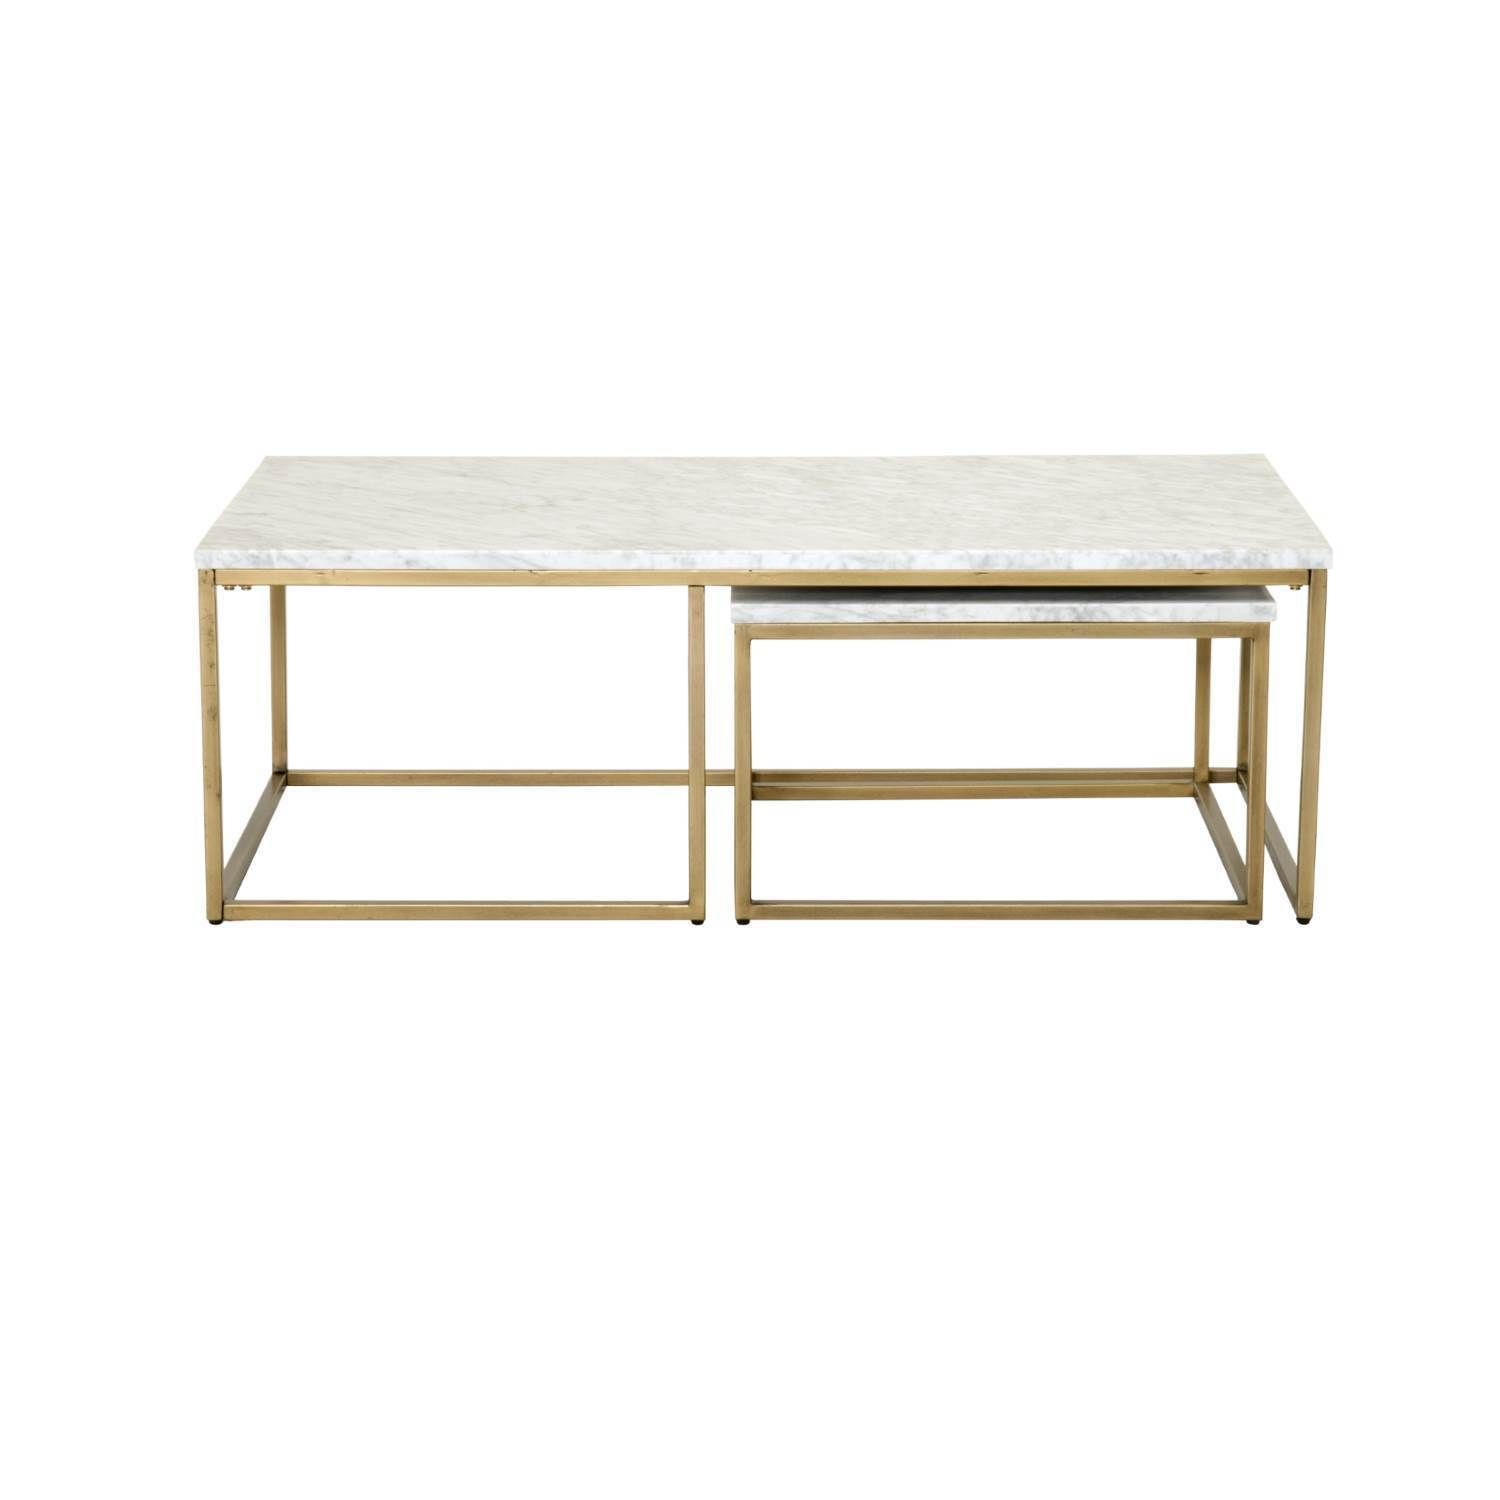 Gray Manor Autumn Goldtone And White Finished Wood Marble Nesting Coffee Table Brushed Gold